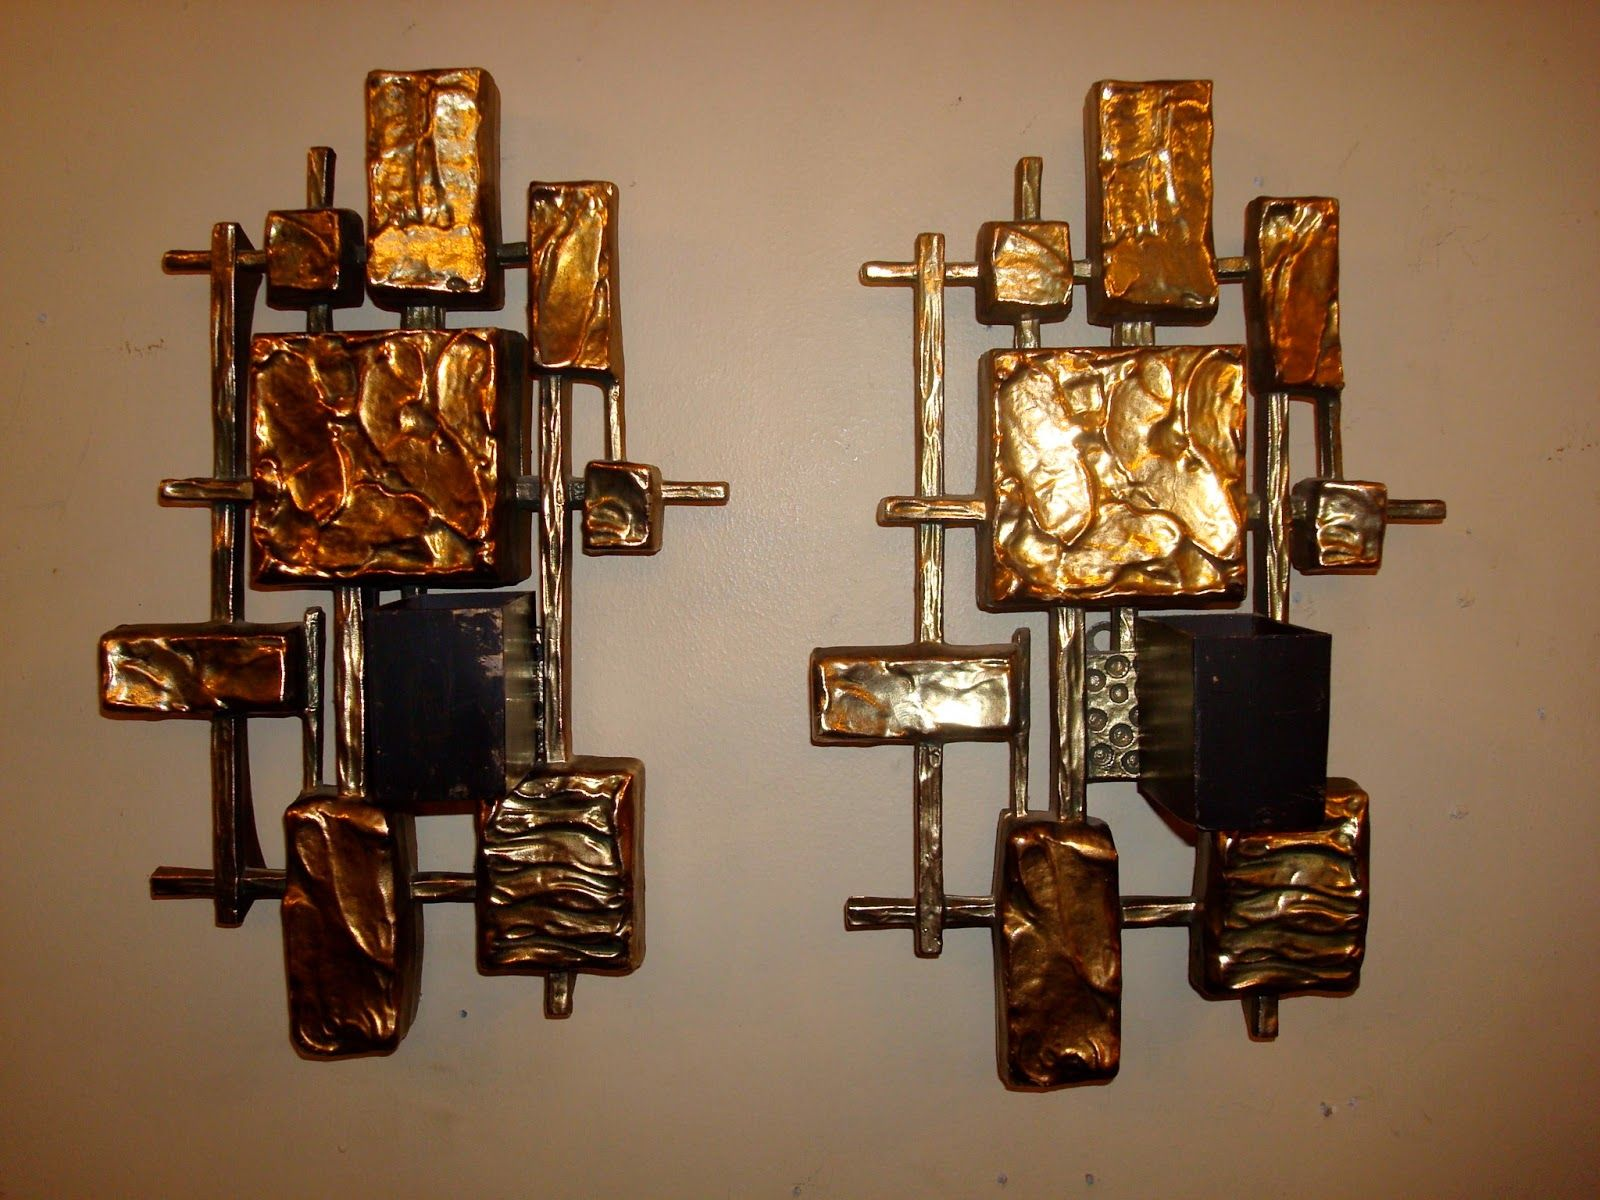 Cheap Wall Lights | Candle wall decor, Candle wall sconces ... on Large Wall Sconces Candle Holders Decorative id=32892